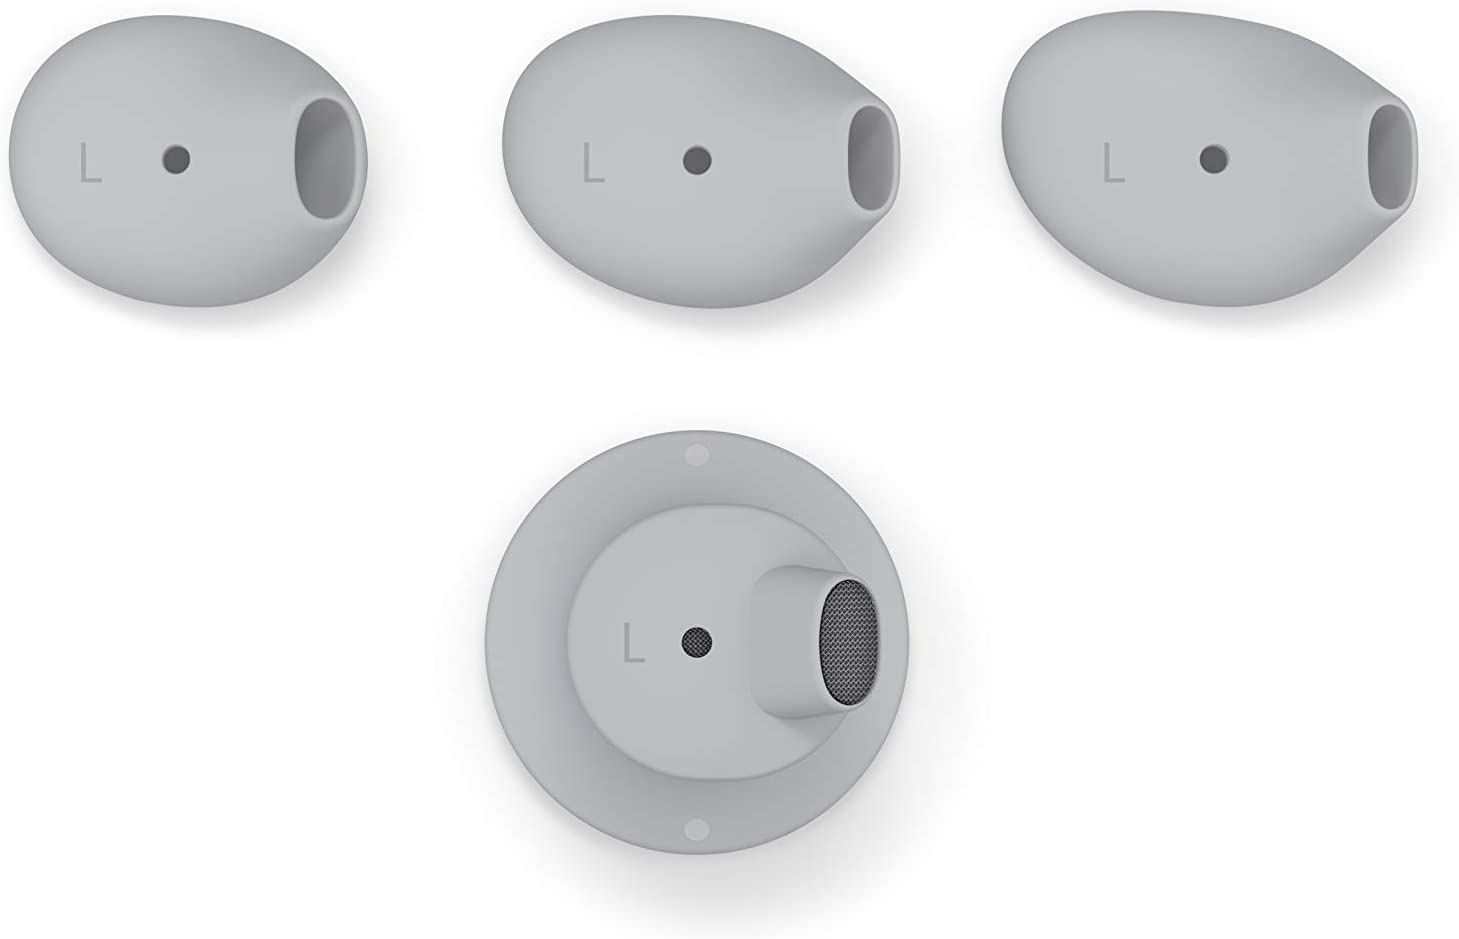 Microsoft Surface Airpods - Wireless Bluetooth Headset from Microsoft